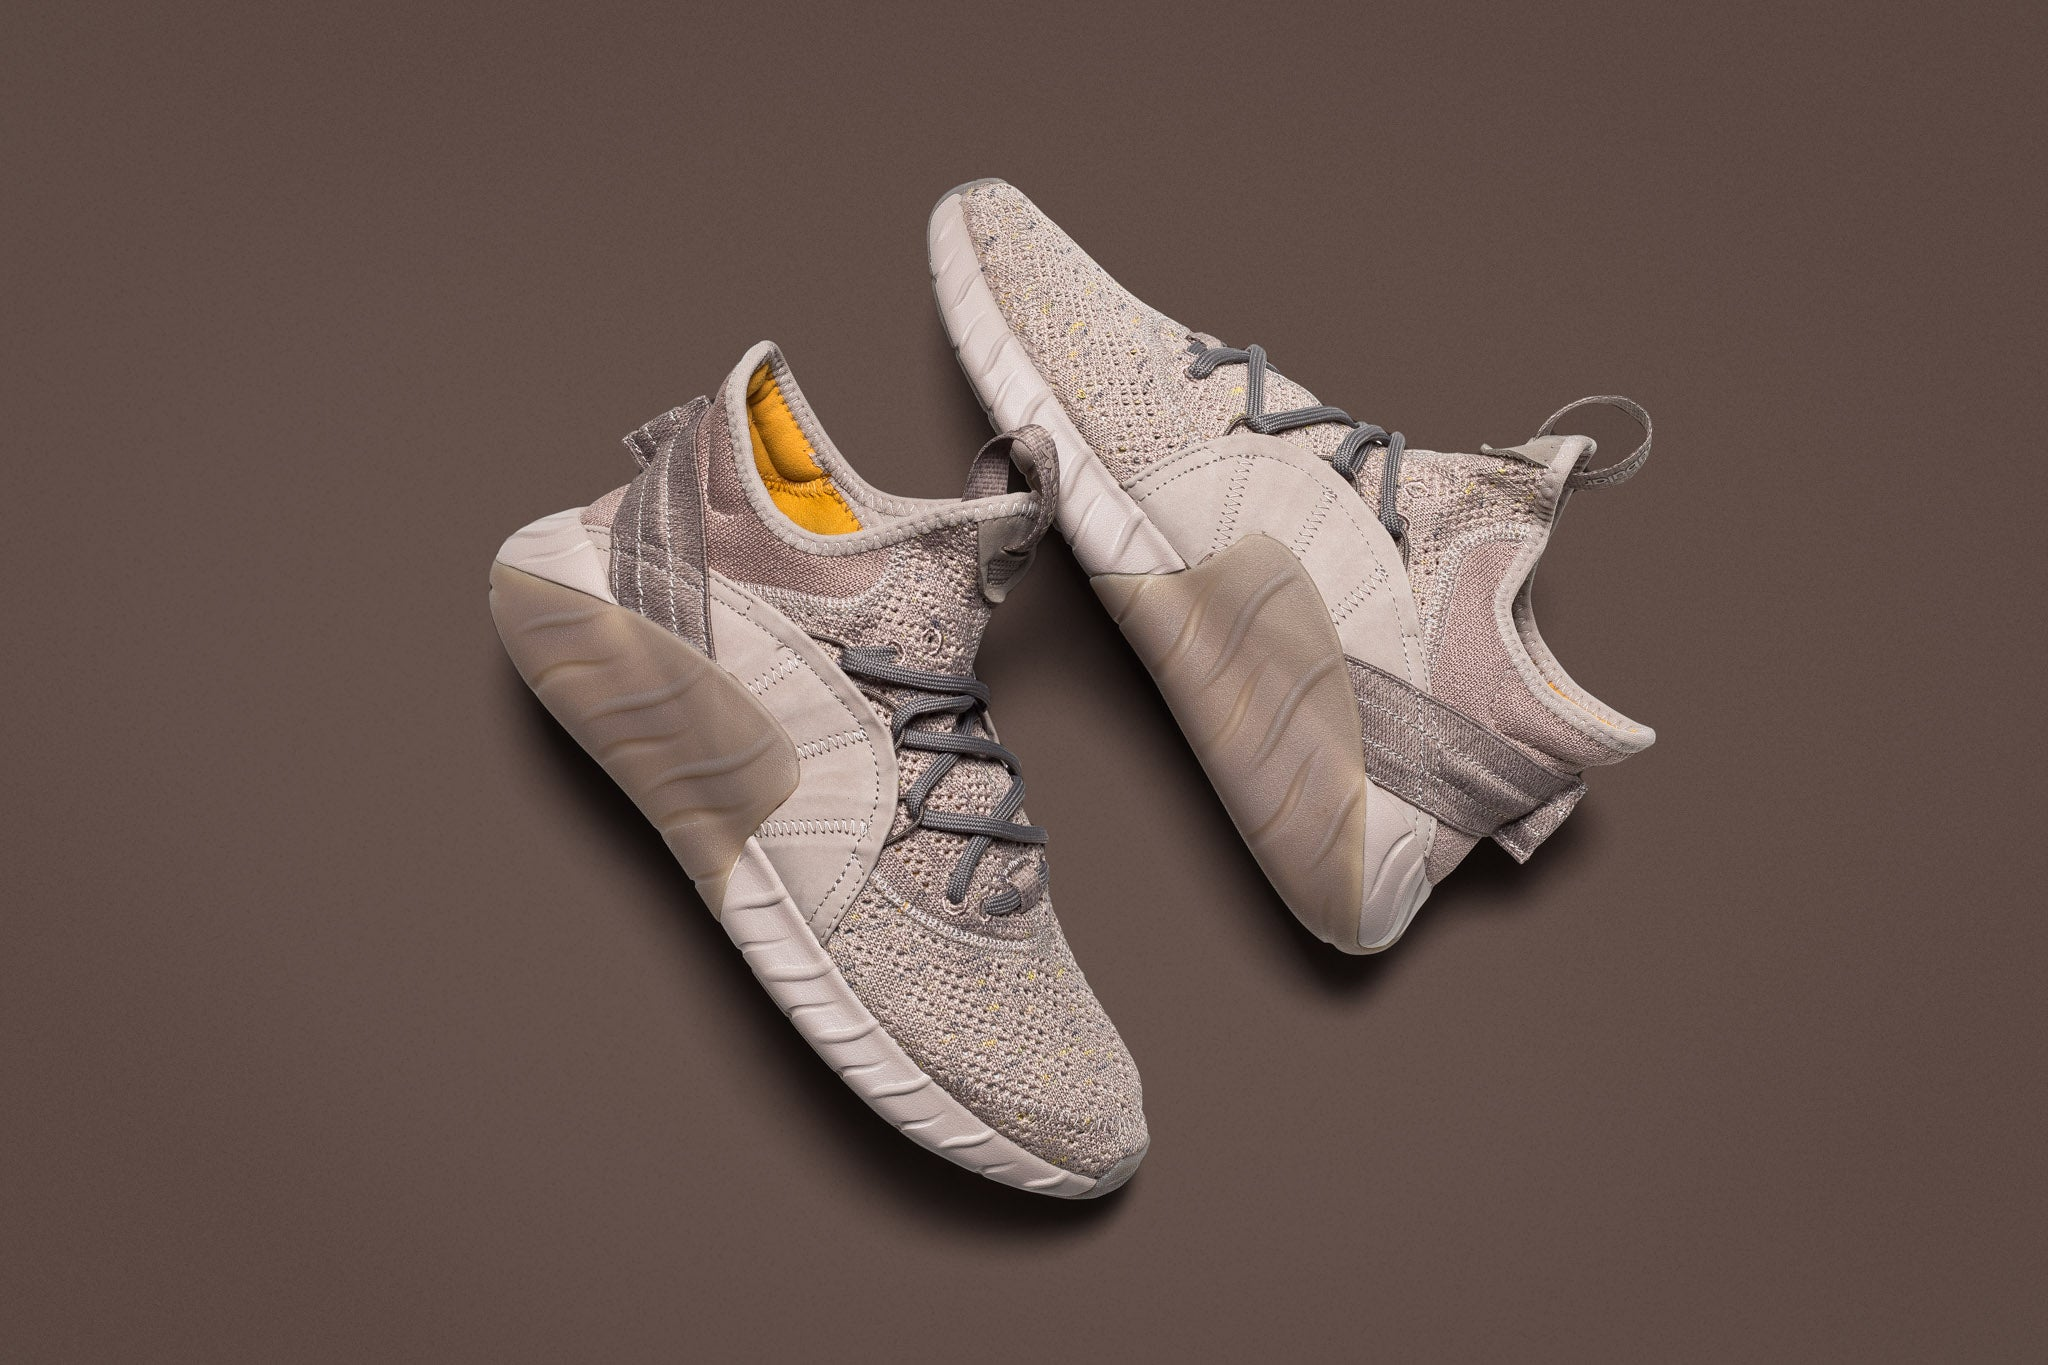 promo code 0636e 6a210 The adidas Tubular Rise is an ultra-comfortable sneaker with adidas  new  take on the pivotal trainer. The upper is comprised of the adidas Primeknit  upper ...